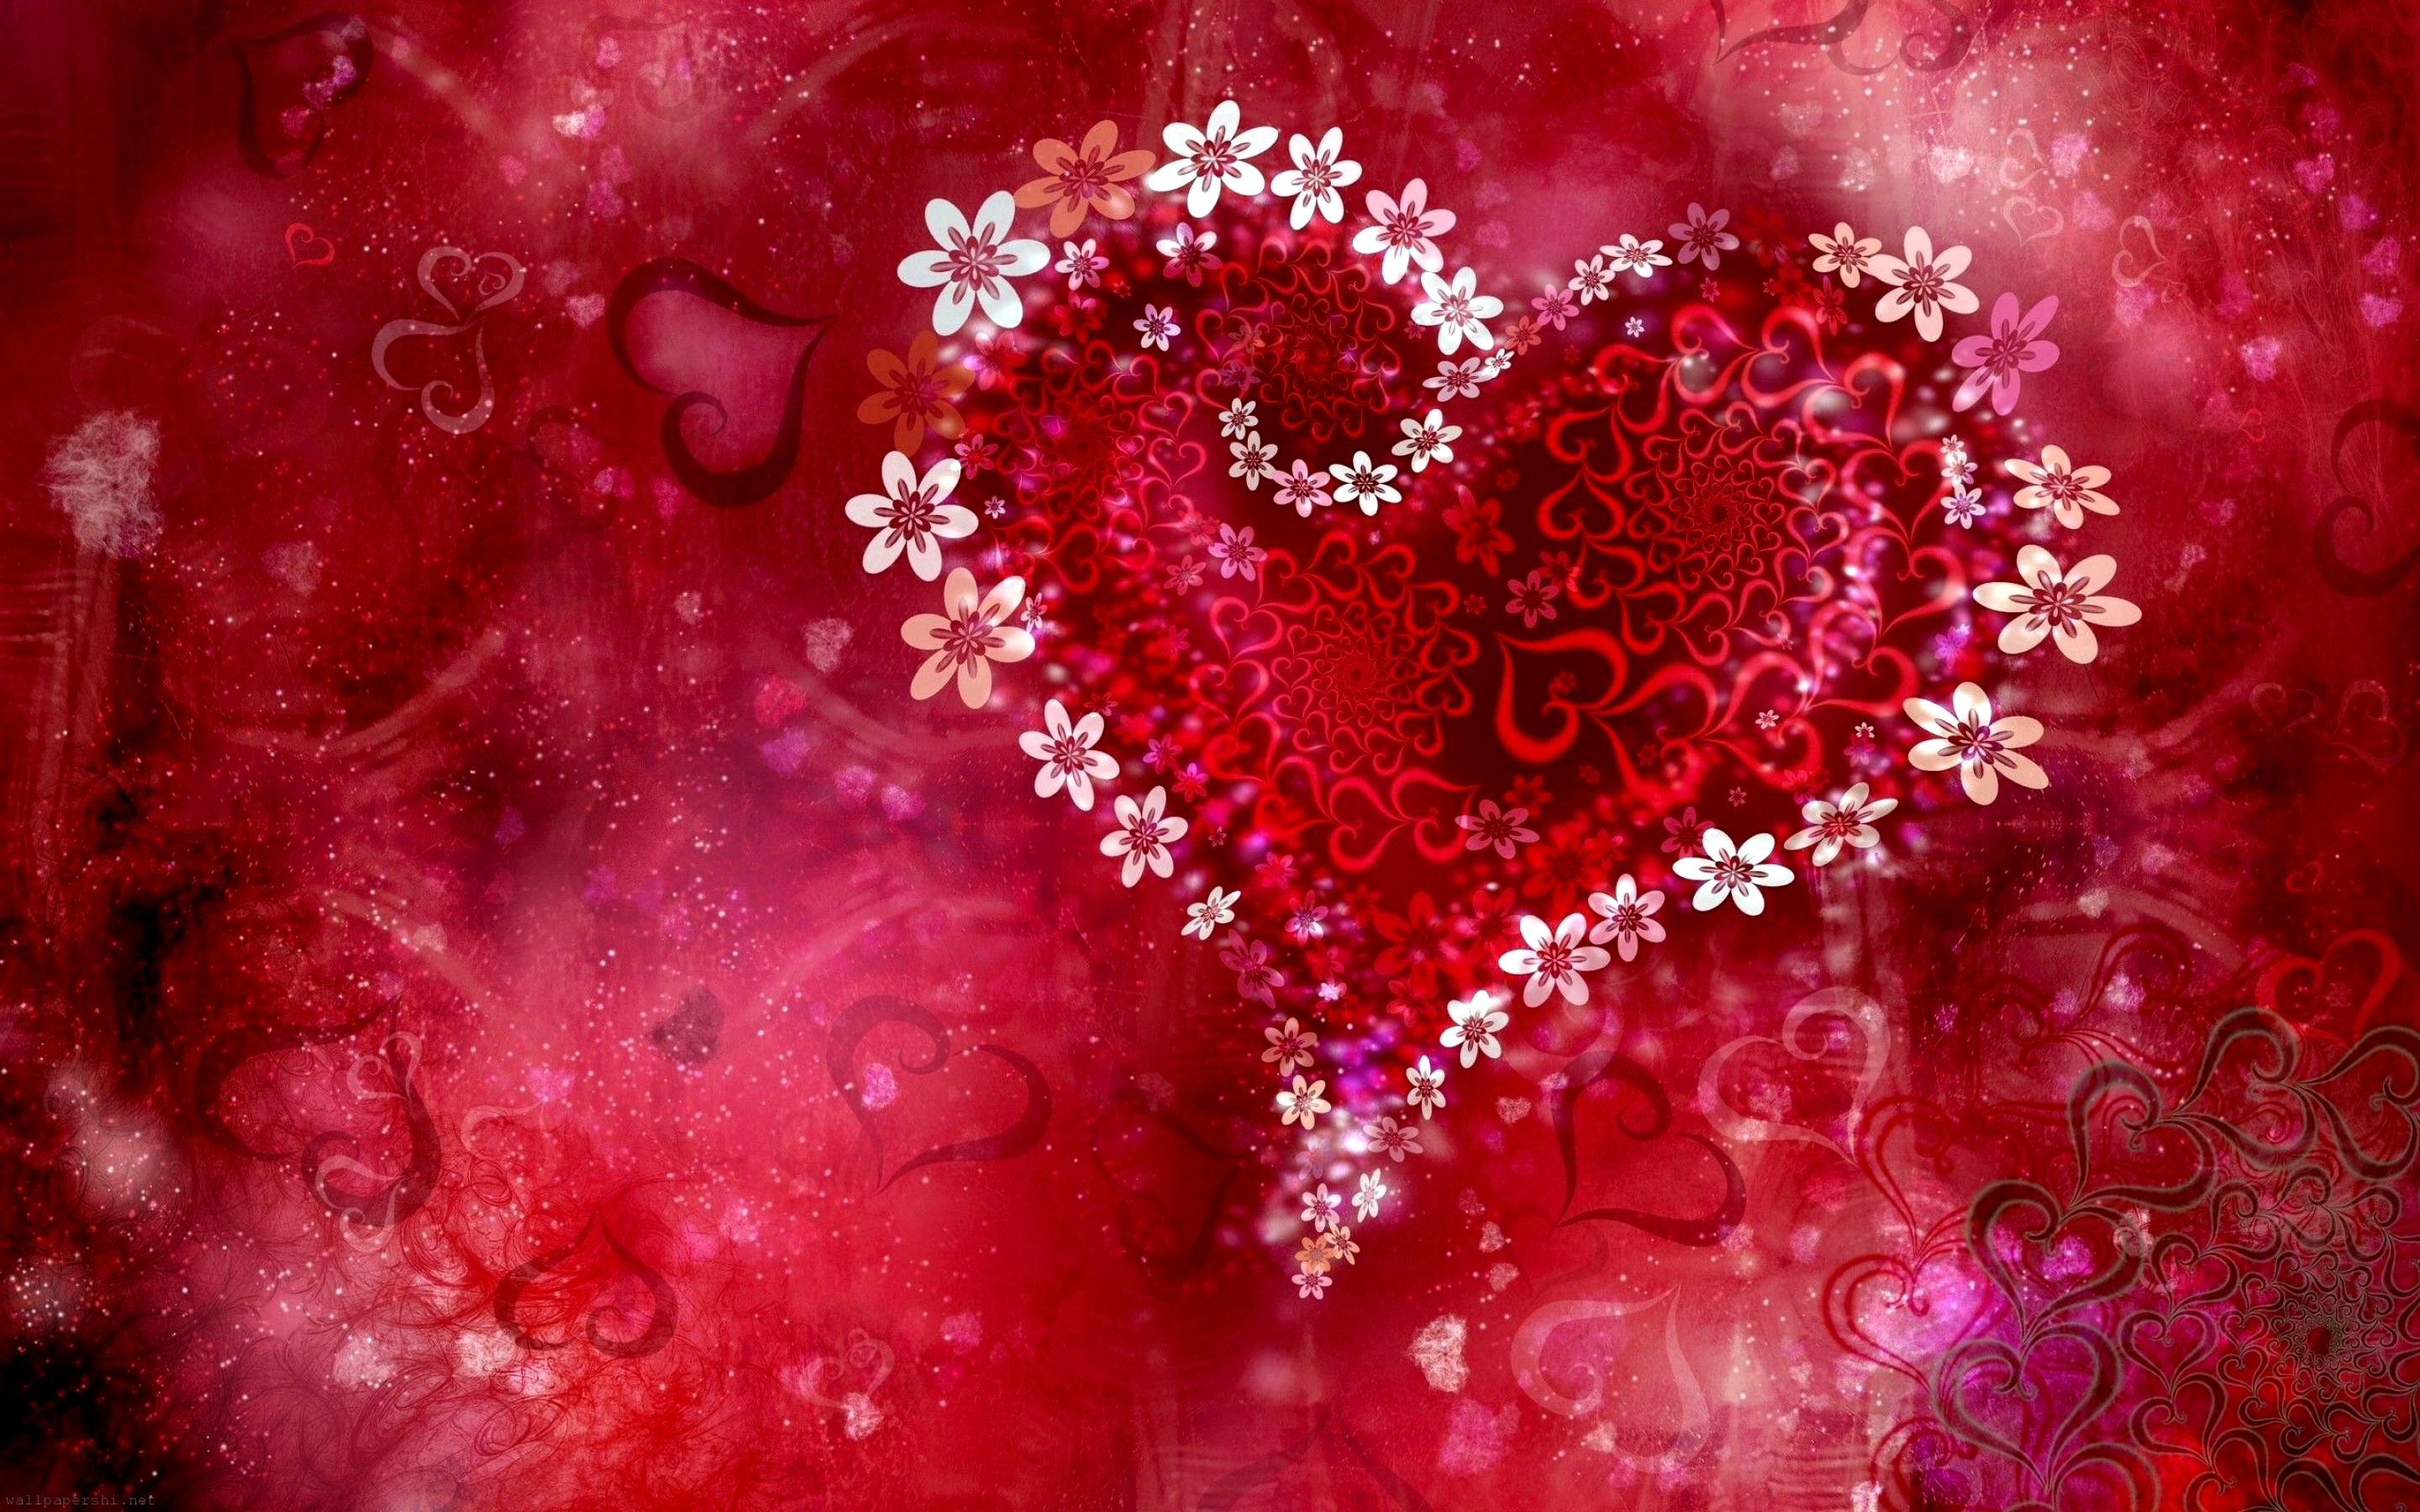 Beautiful Love Wallpaper Hd: GRAPHICAL [03] Heartly [03december2012monday